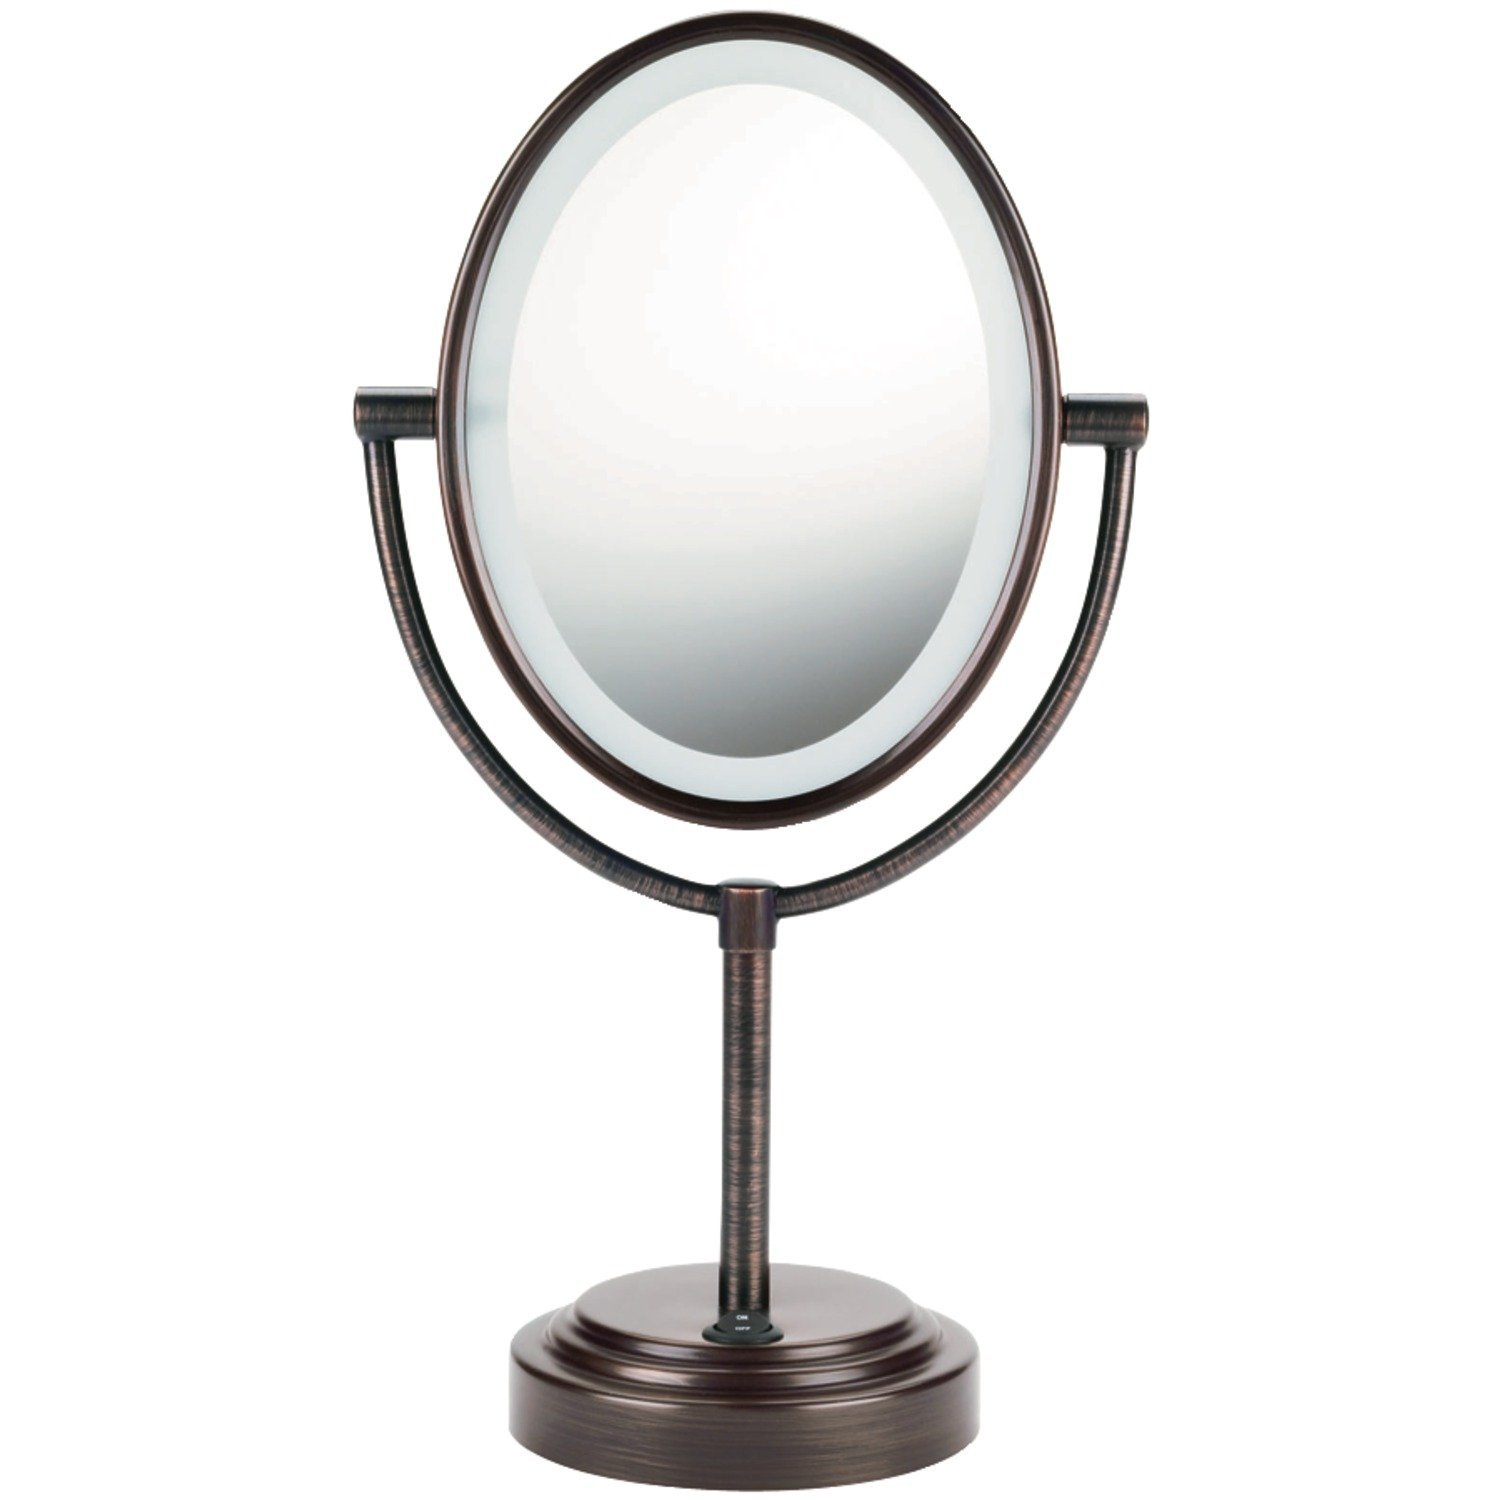 15x Magnifying Mirror | Magnifying Mirror with Light | Best Lighted Makeup Mirror